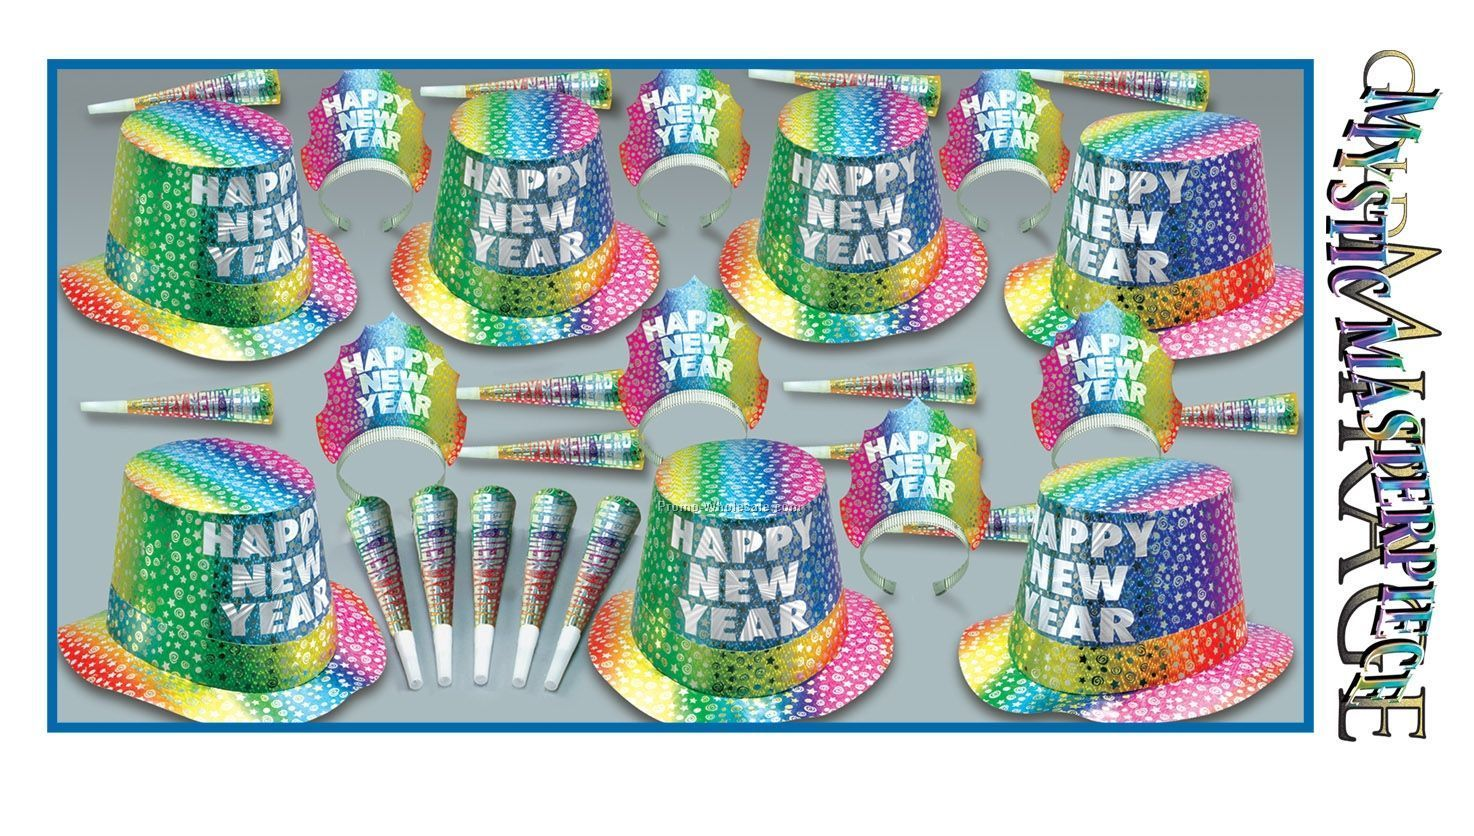 Mystic Masterpiece Lazer Etched Assortment For 20